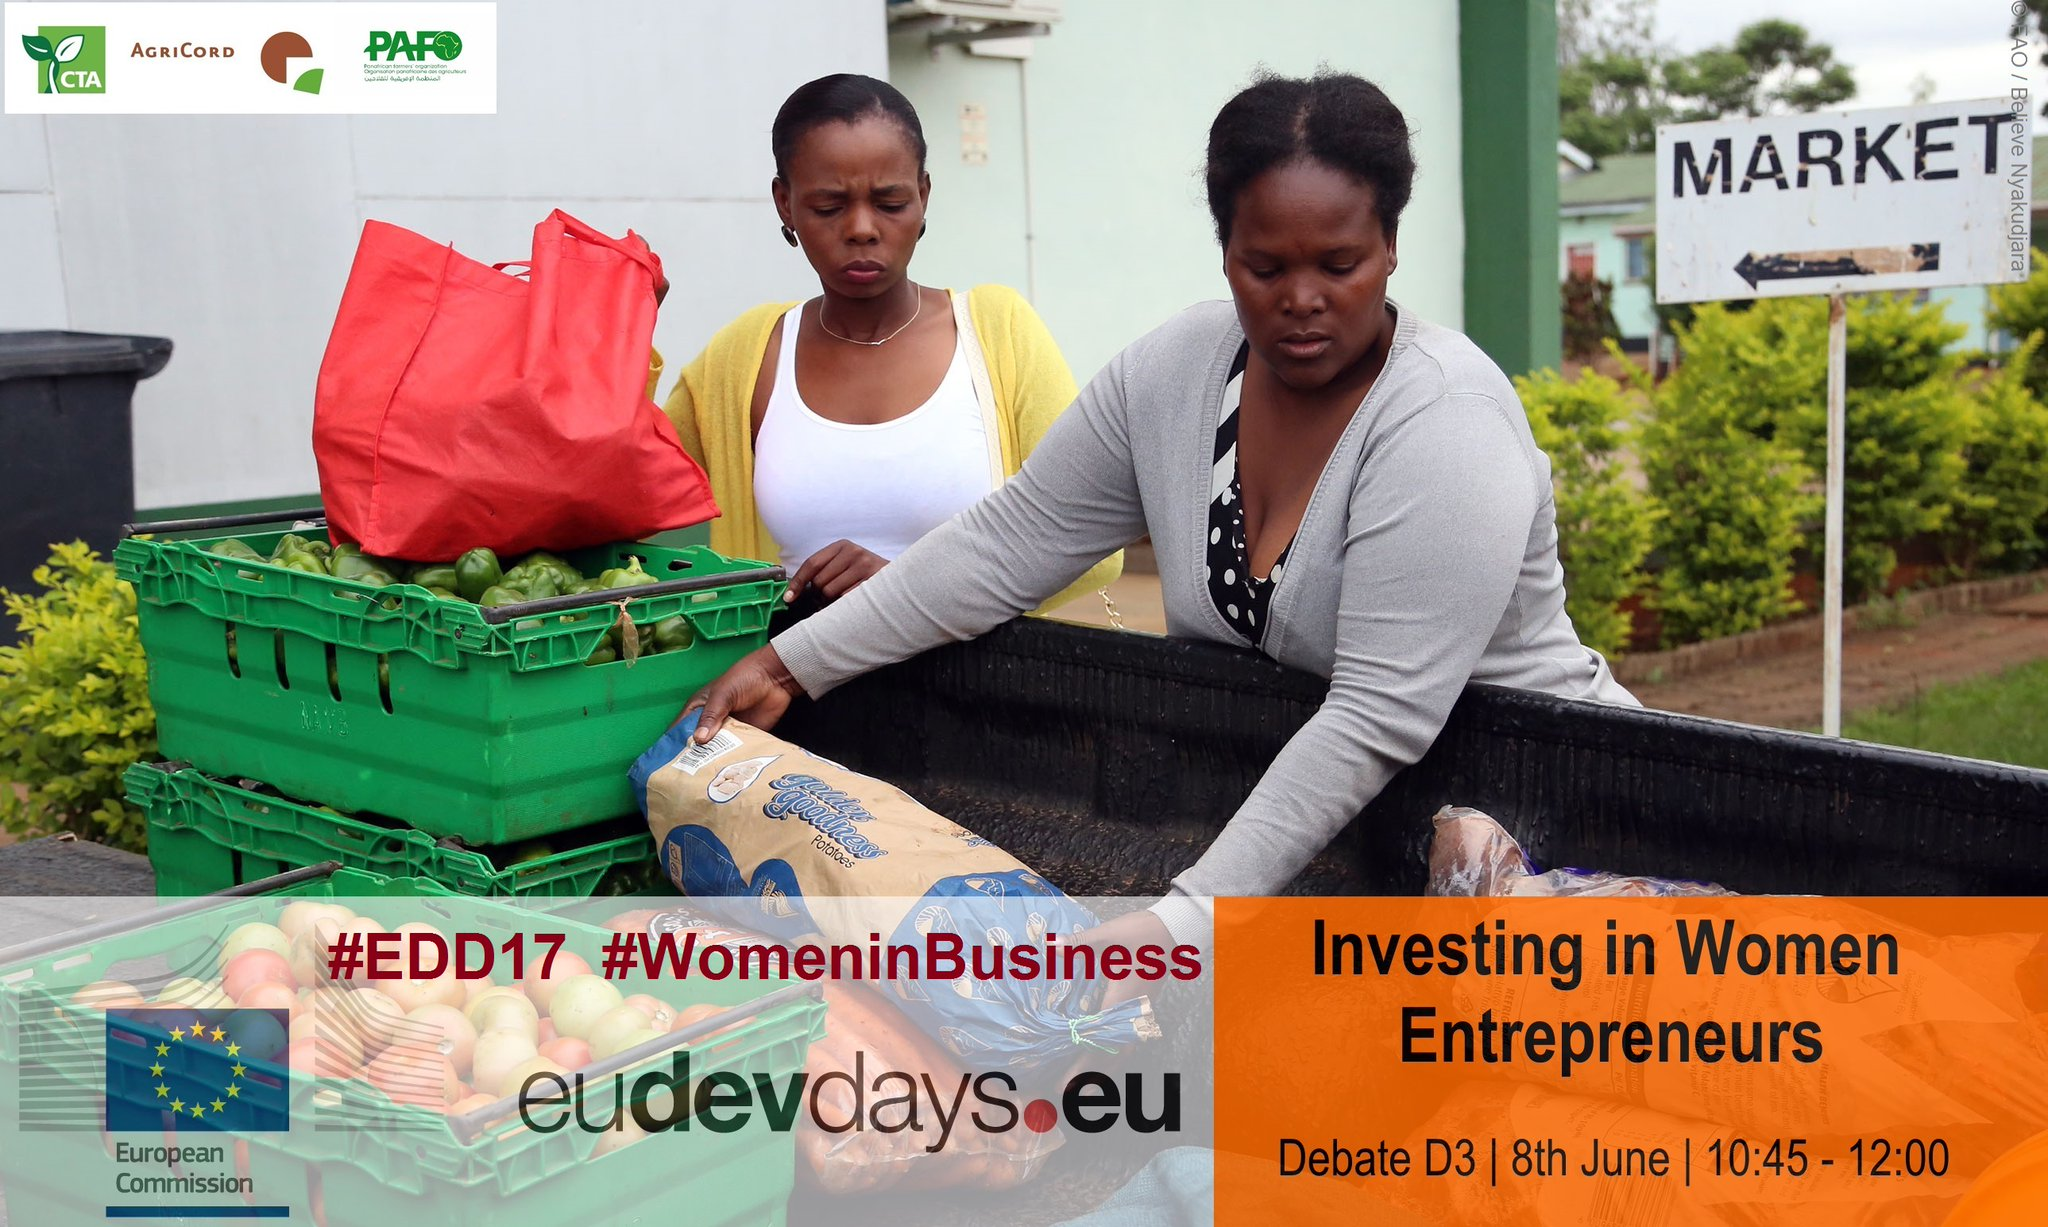 How can we make #women's role in the economy greater & fairer? We invite you to #EDD17 Rm D3 at 10:45 for an unmissable debate on this issue https://t.co/62jnFiGbxL